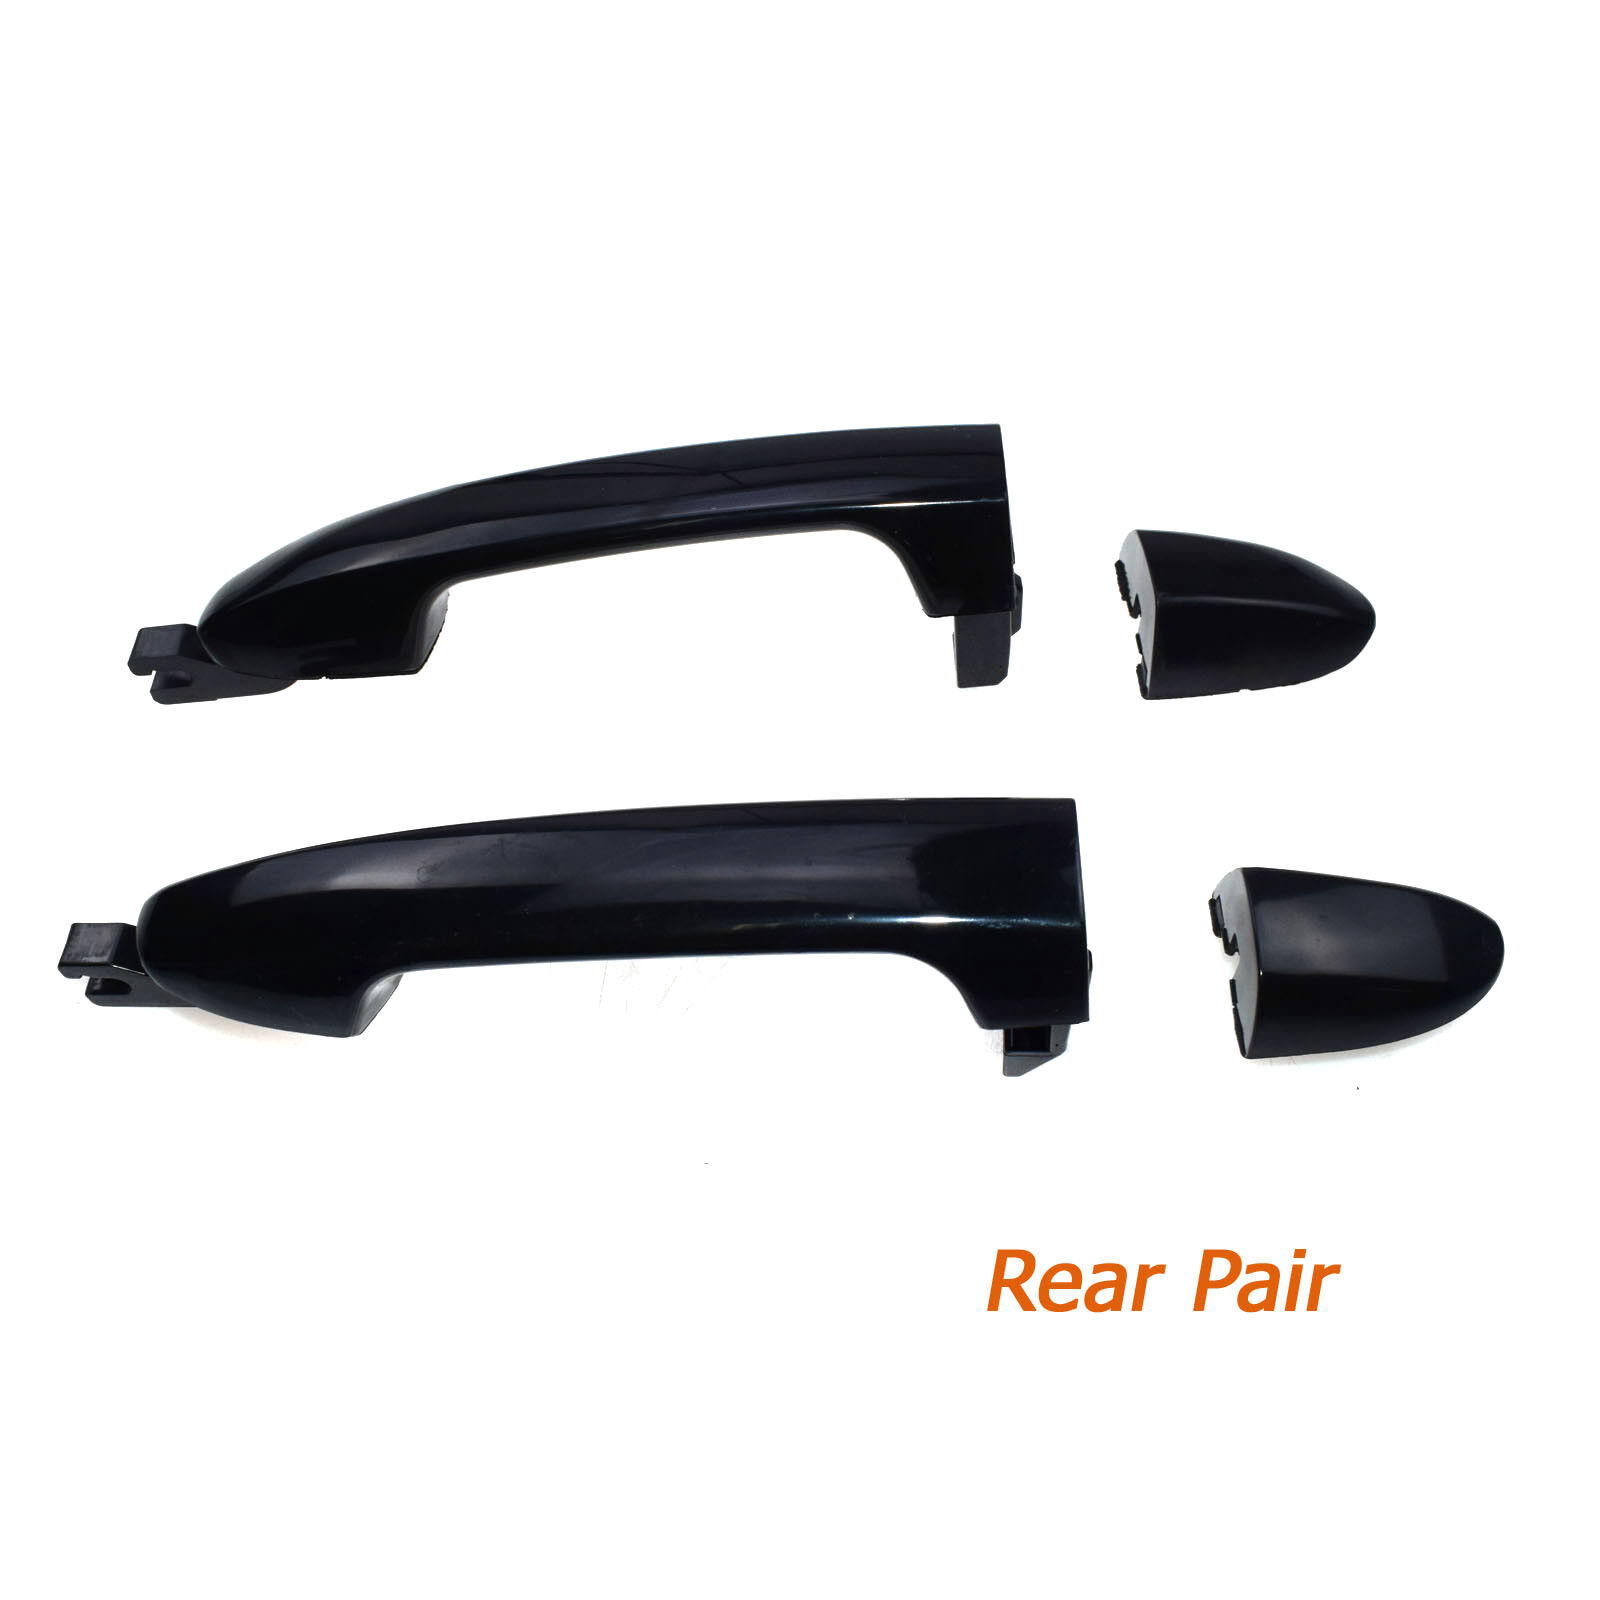 Rear Exterior Outside Door Handle Left Side Fit for Kia Spectra Spectra5 04-09